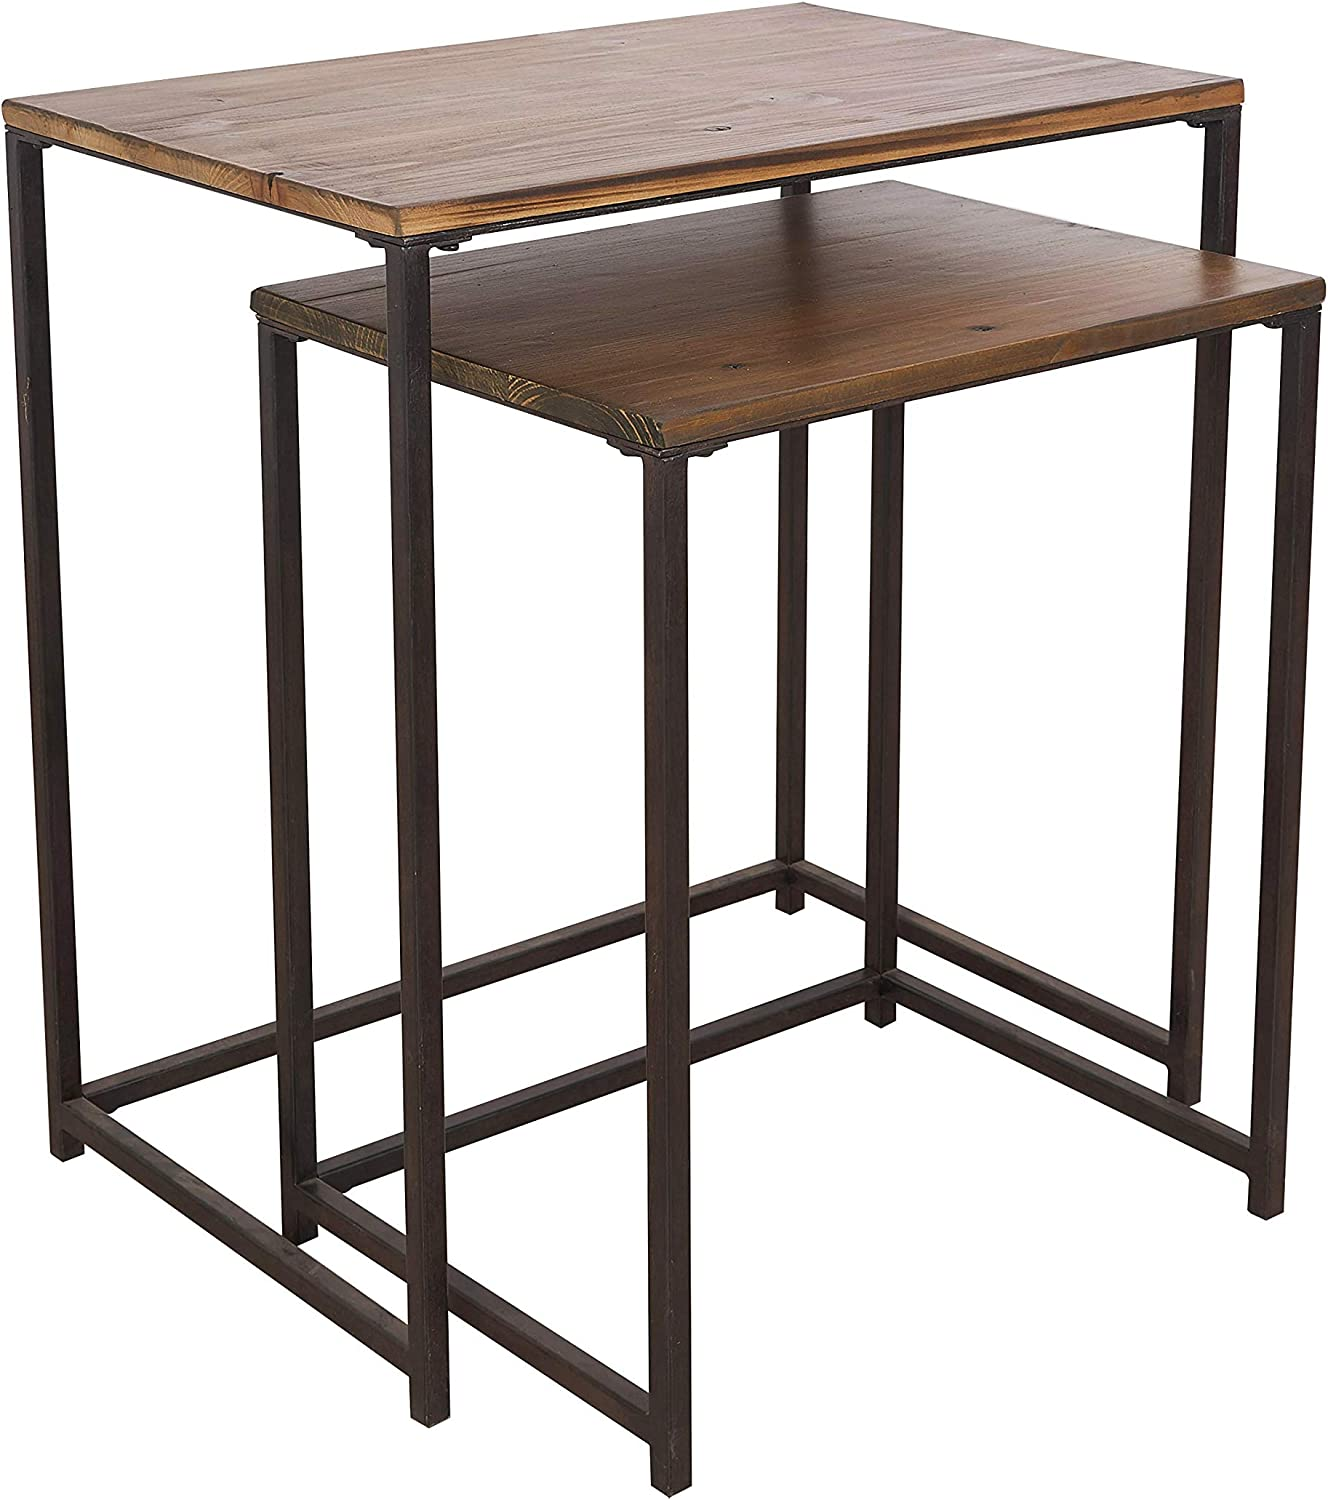 Nesting Table Set of 2, Stackable Coffee Table, Rectangle Side End Table for Living Room Balcony, Metal Frame and Wood Tabletop, Brown